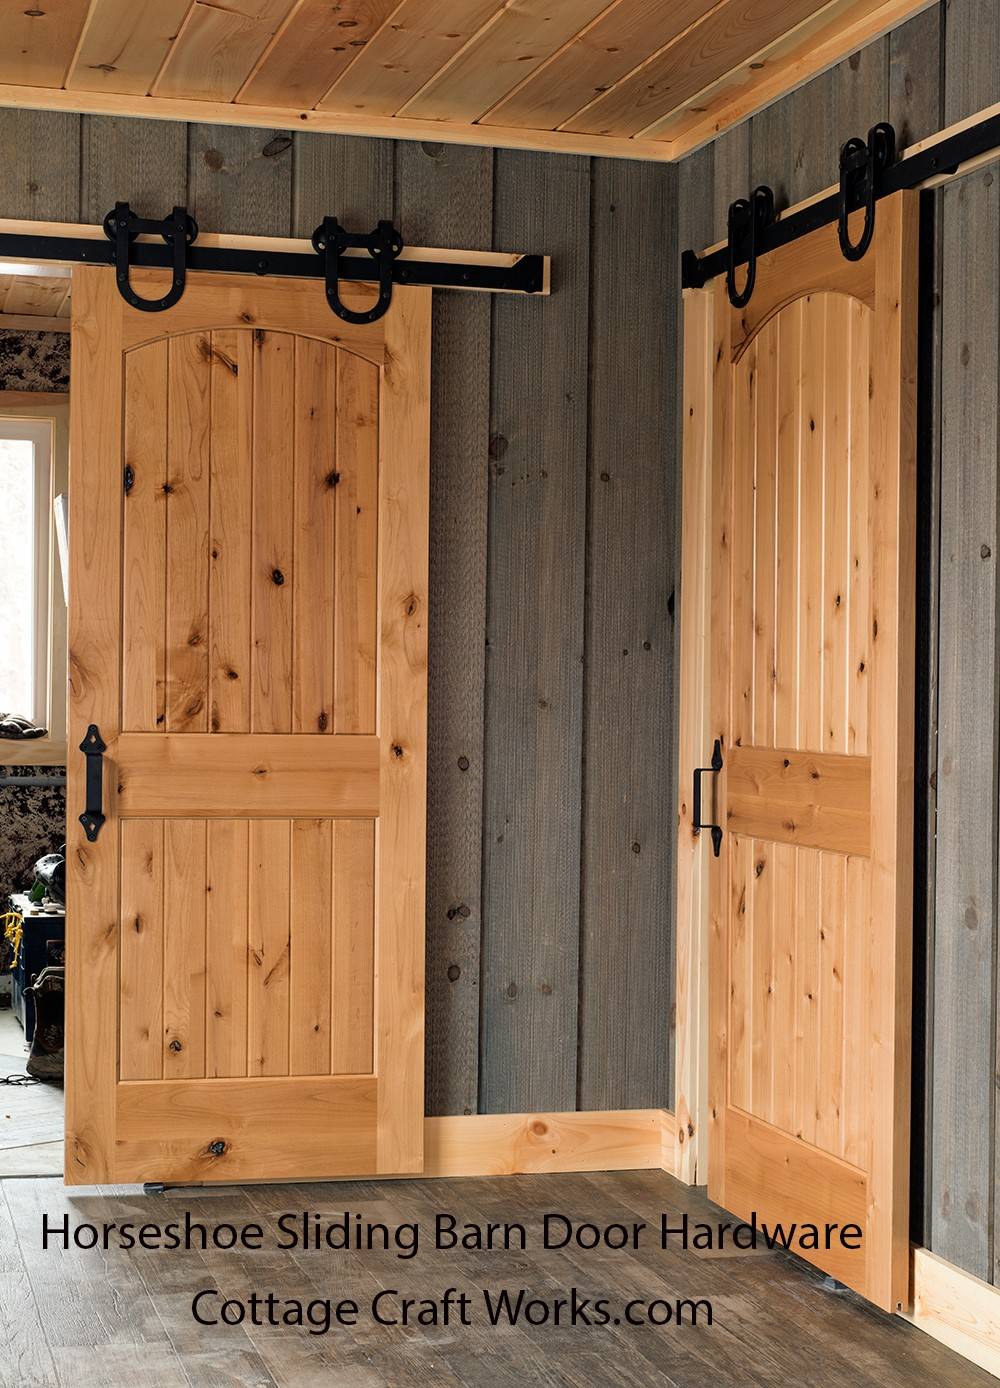 Barn Door Hardware | USA Six Foot Sliding Hardware